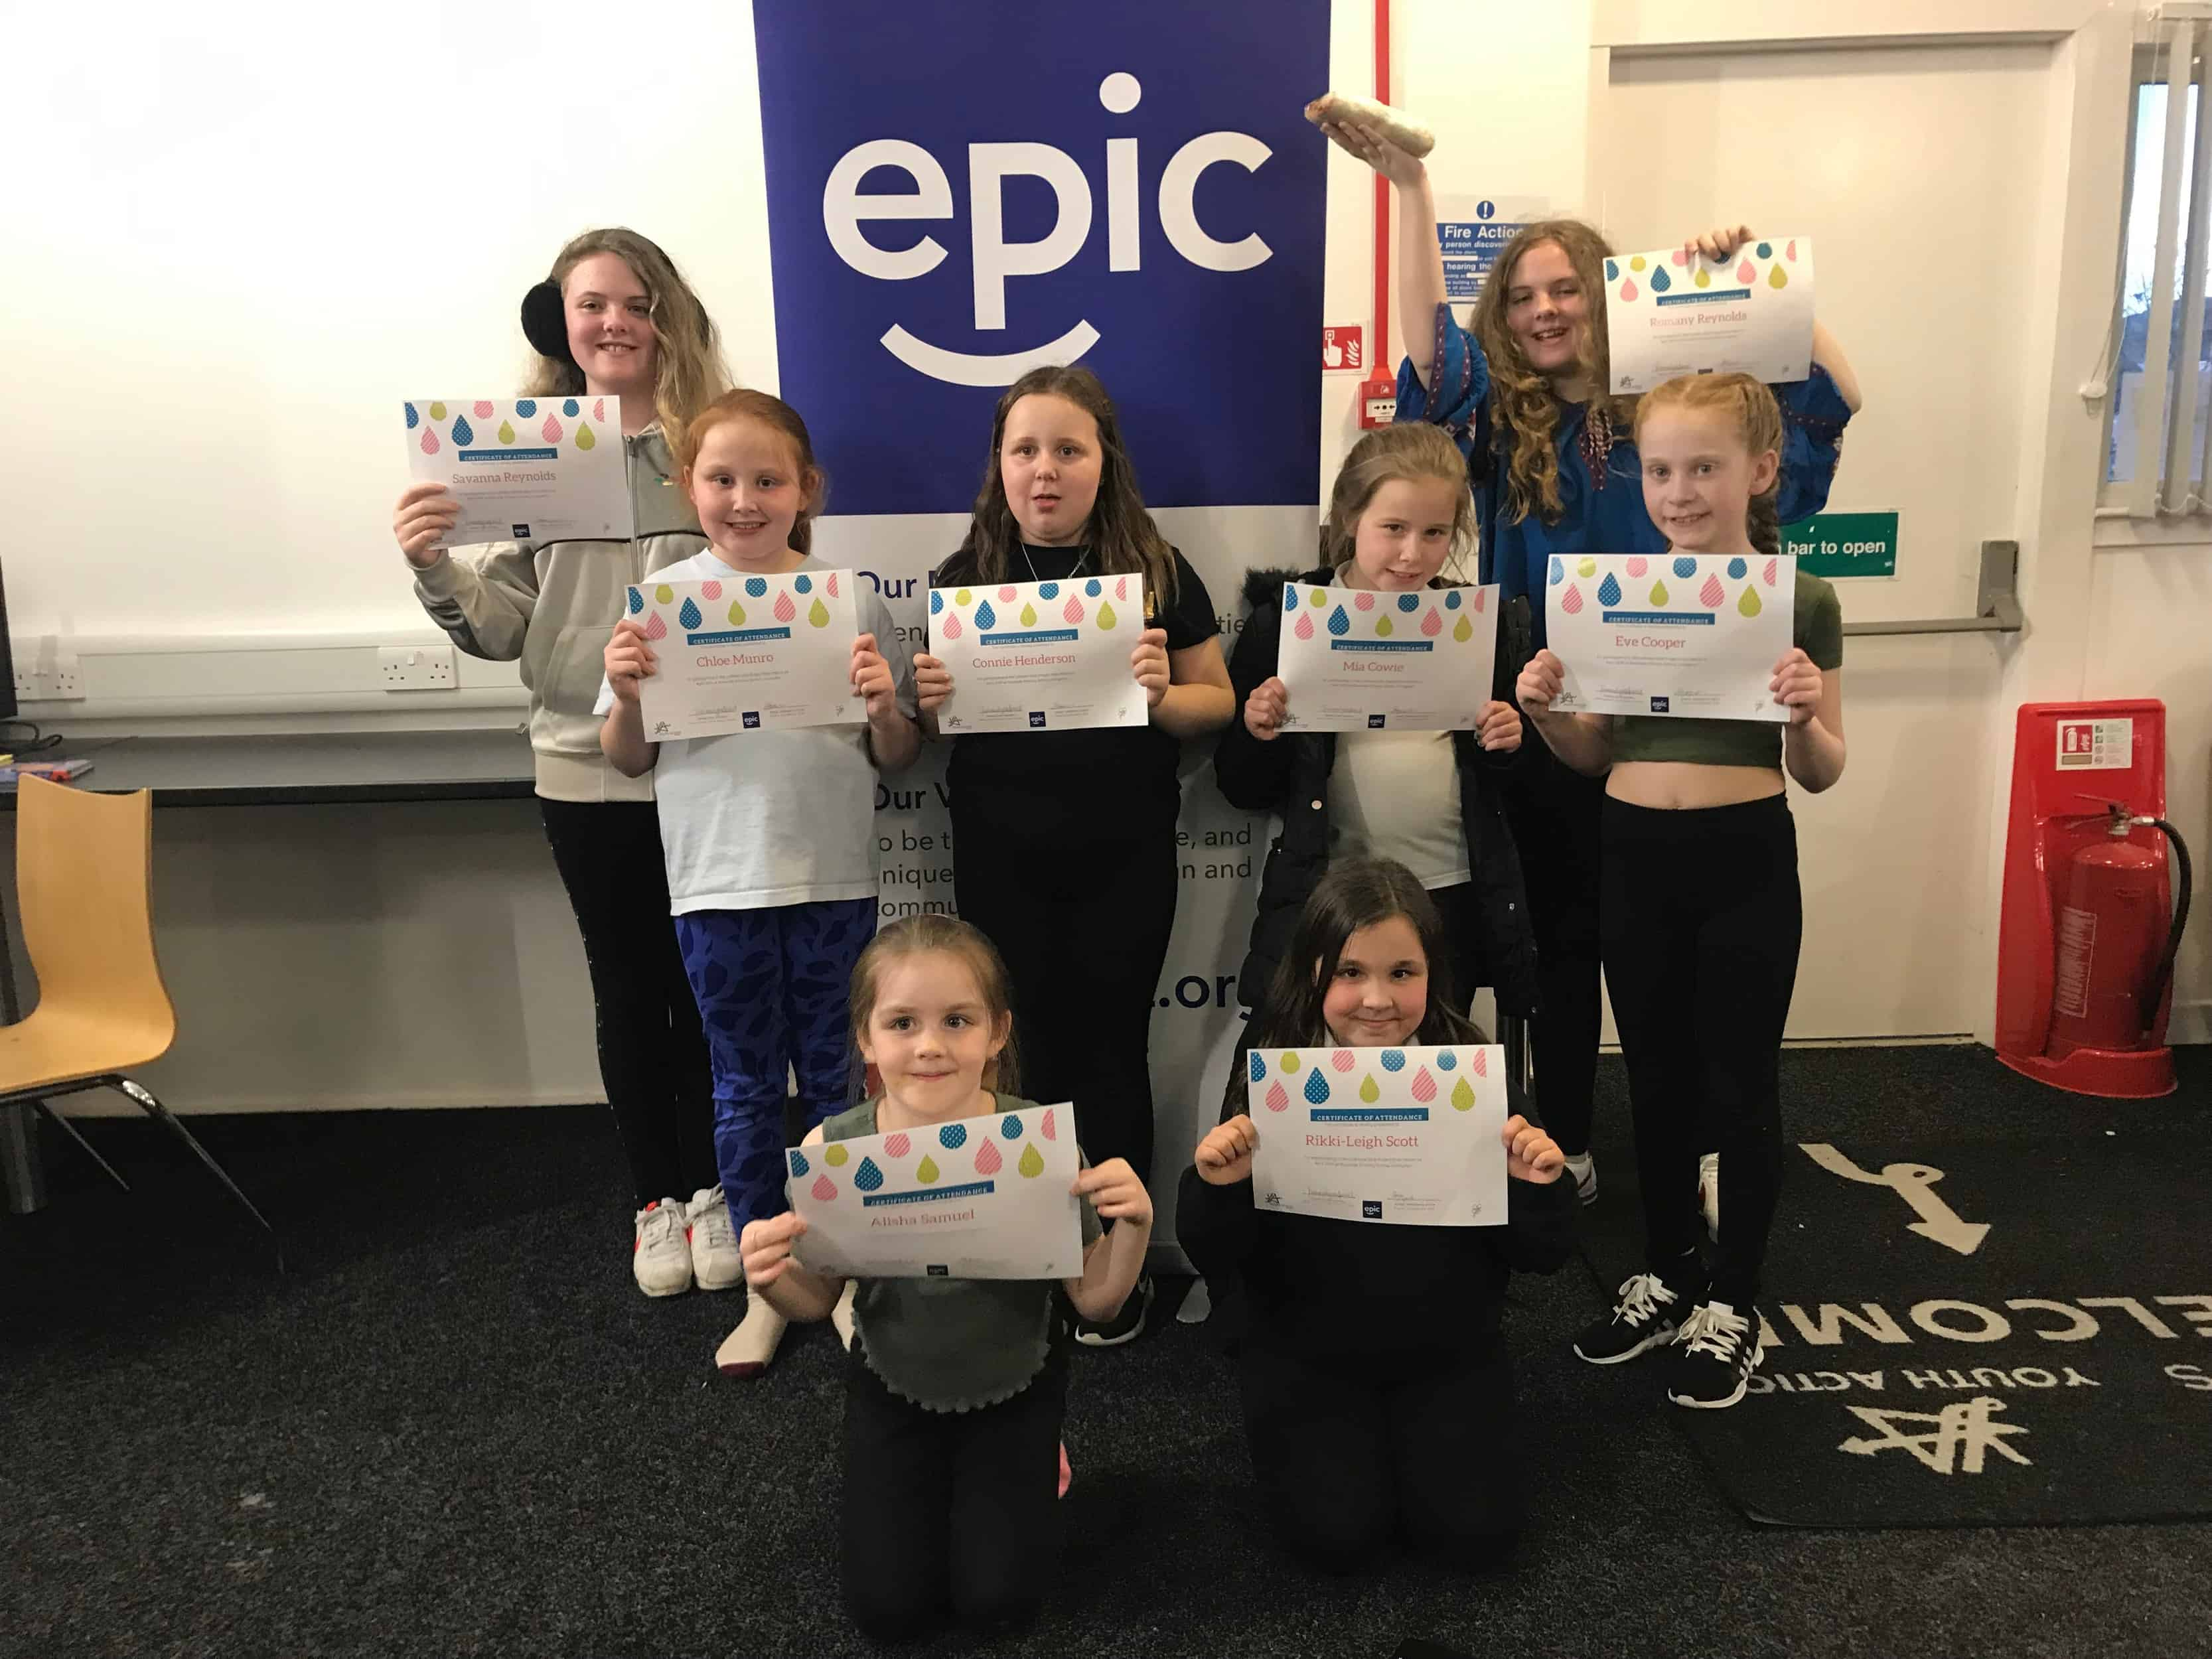 8 girls from the Livingston Girls Project pose with their certificate.